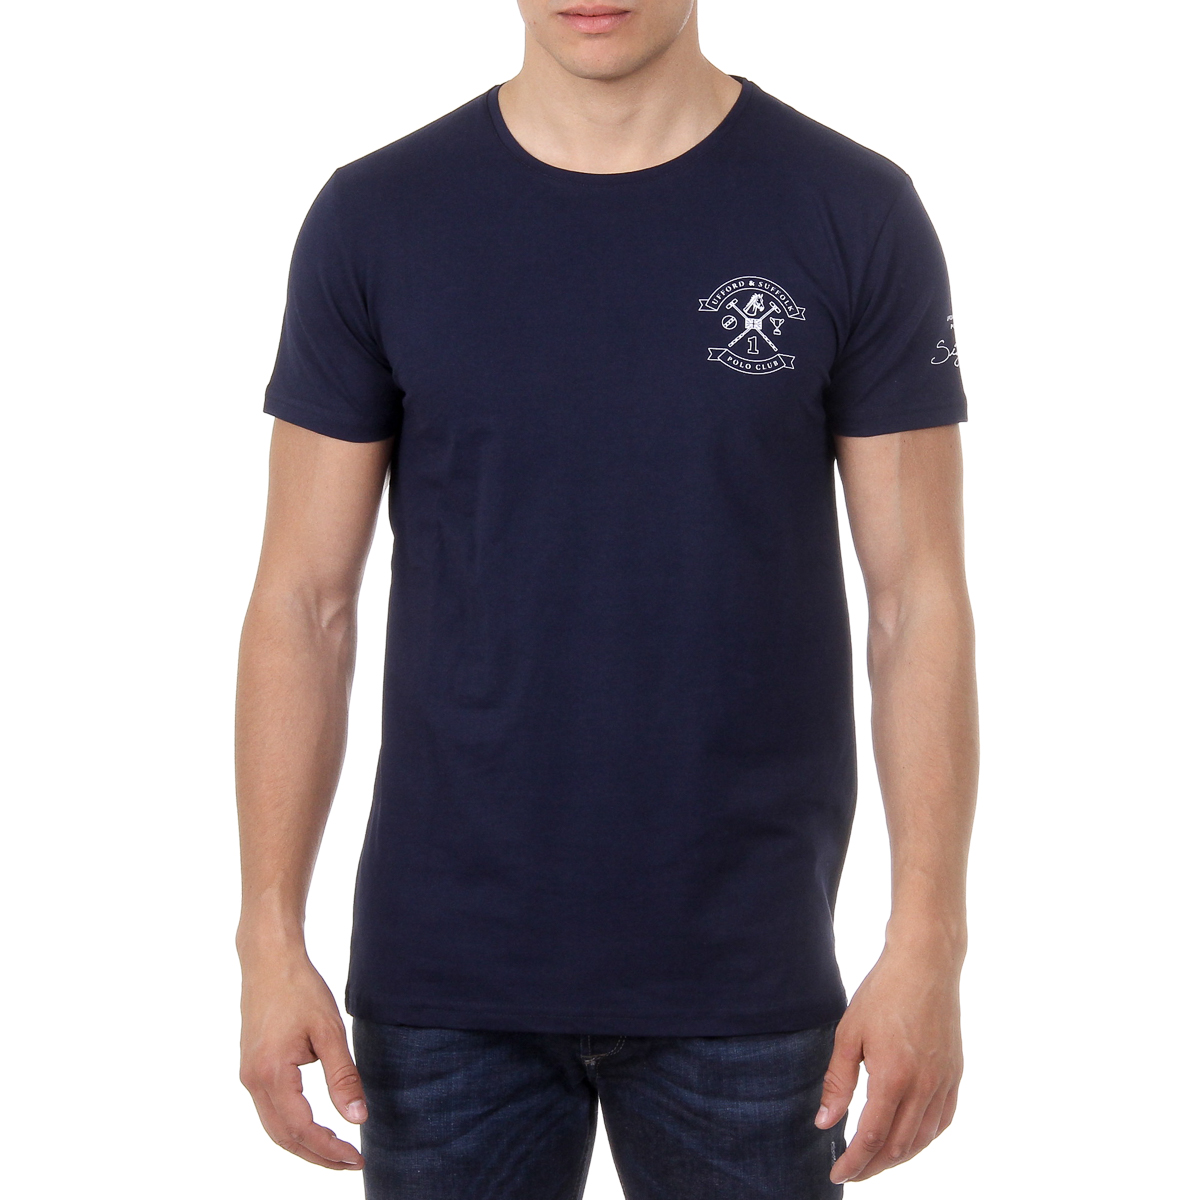 Primary image for Ufford & Suffolk Polo Club Mens T-Shirt Short Sleeves Round Neck US028 NAVY BLUE